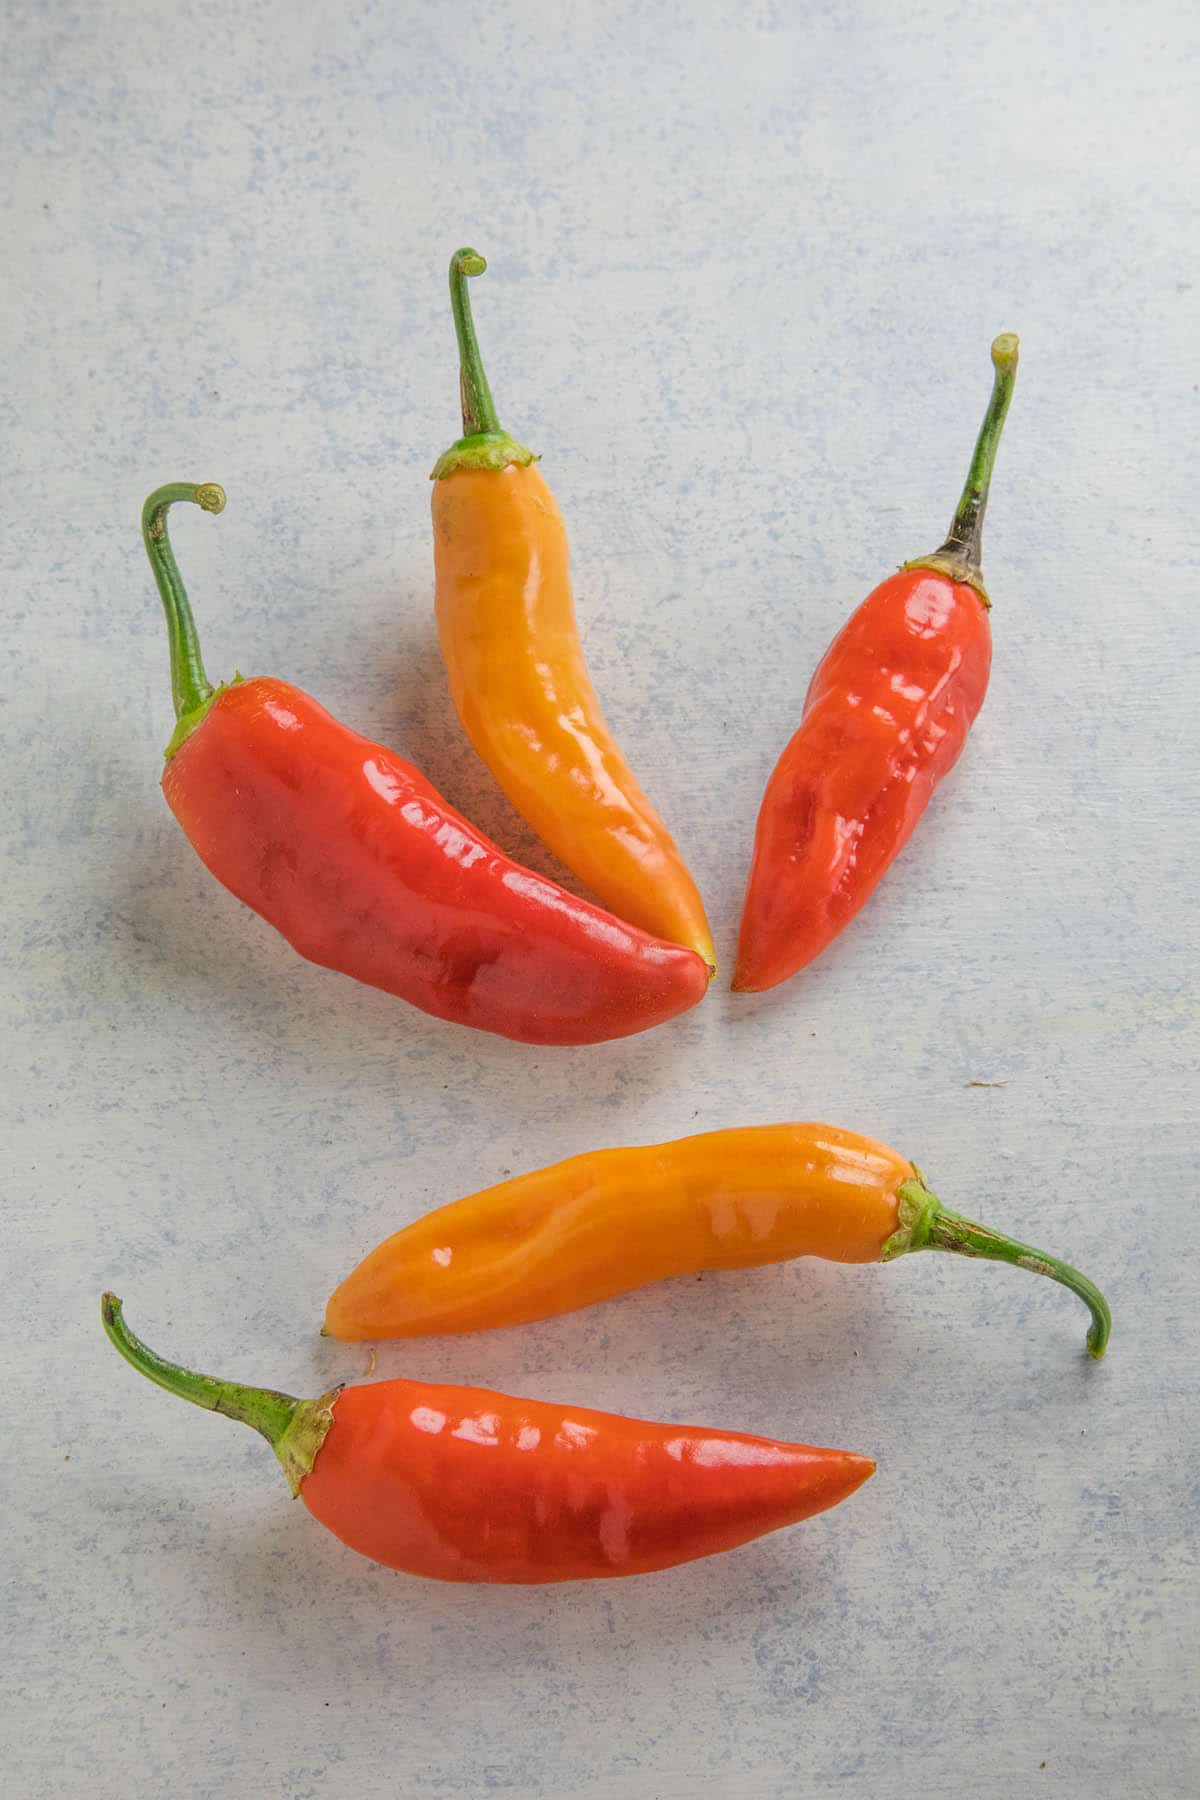 Aji Limo Chili Peppers